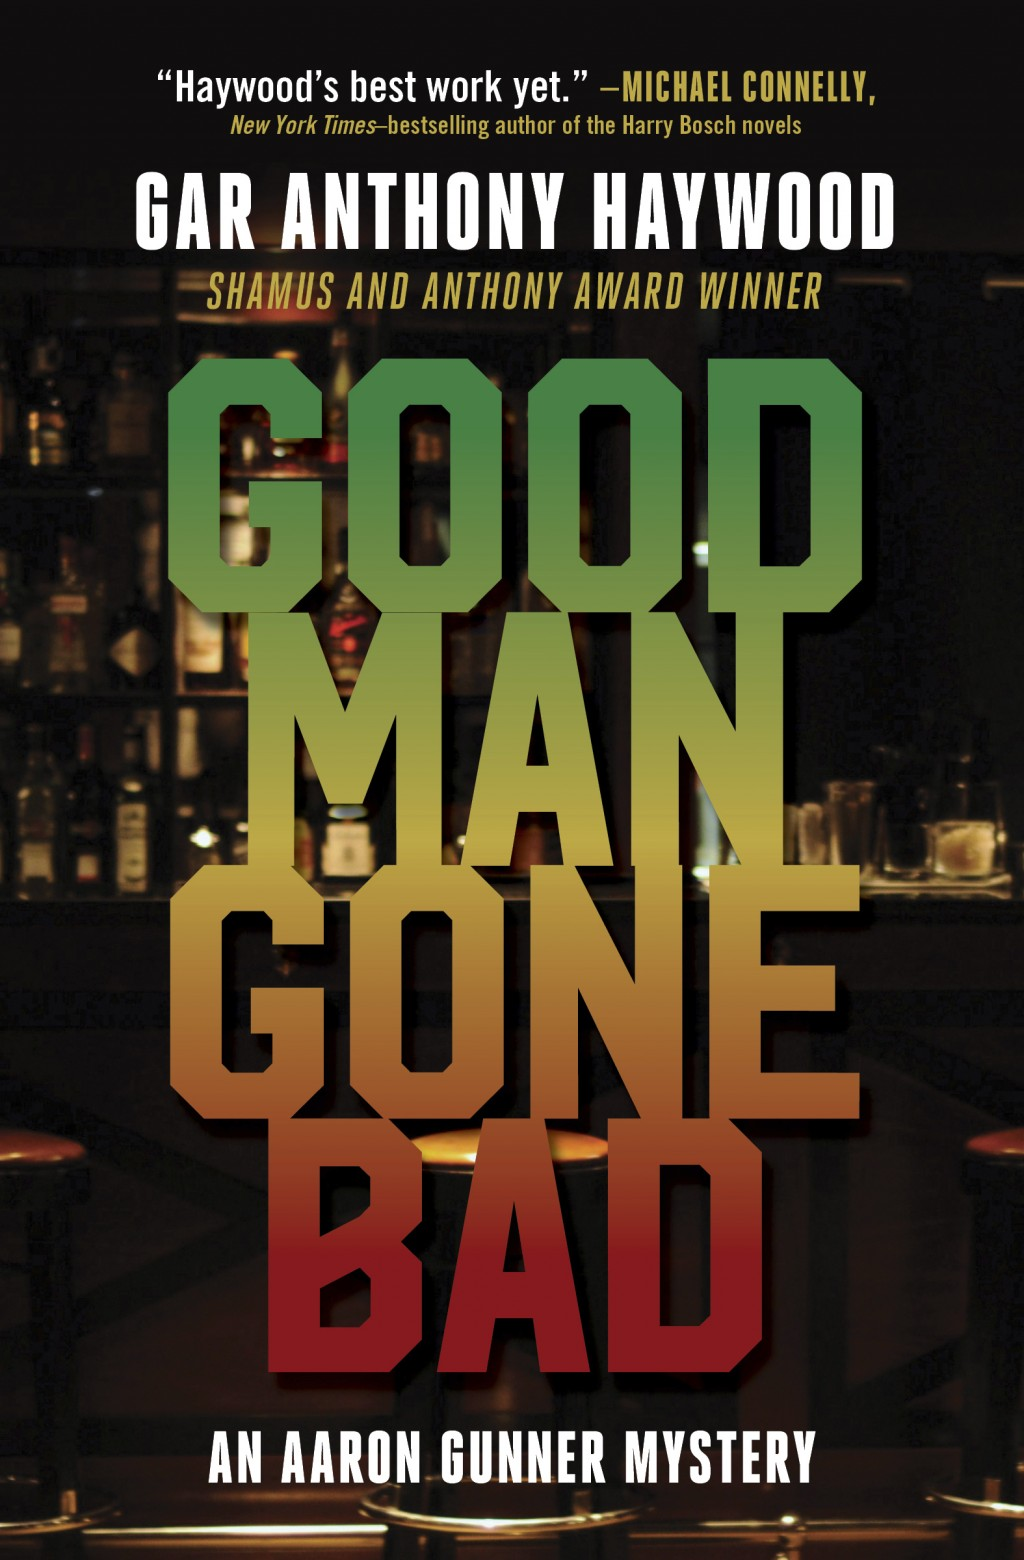 """This cover image released by Prospect Park Books shows """"Good Man Gone Bad"""" by Gar Anthony Haywood.  (Prospect Park Books via AP)"""